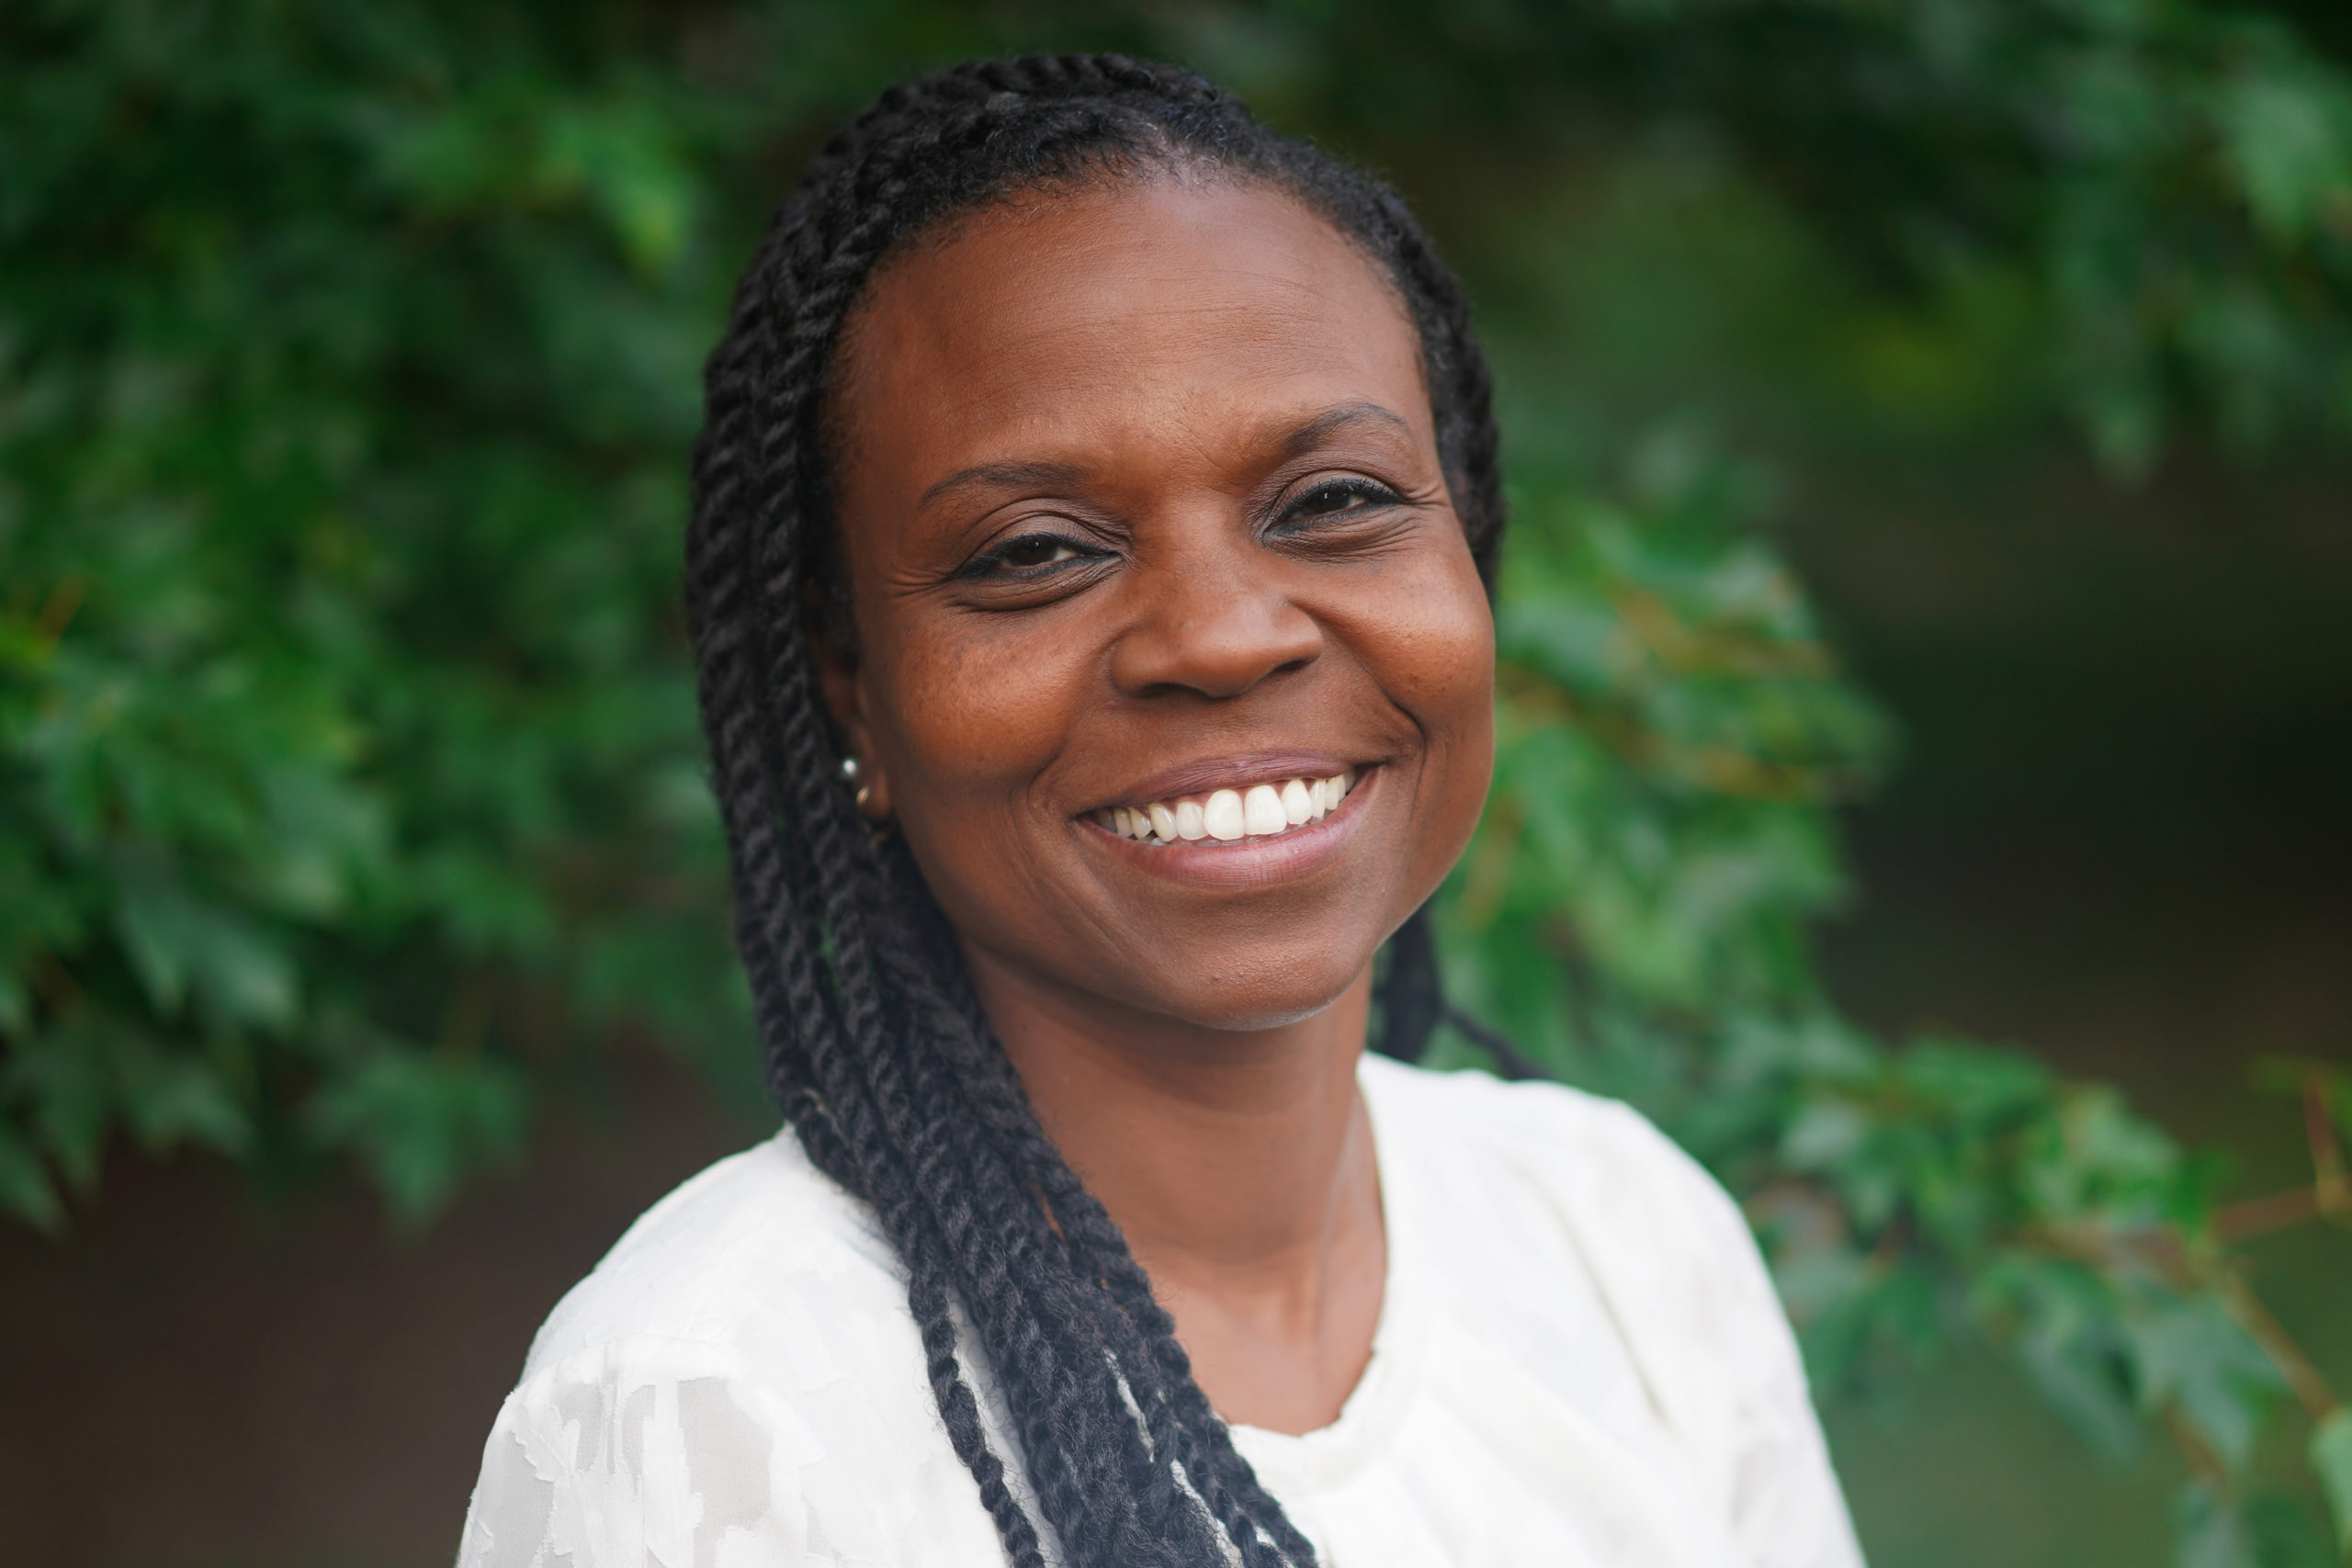 Meet Carmen Johnson – Assisted Living and Memory Care Life Enrichment Coordinator